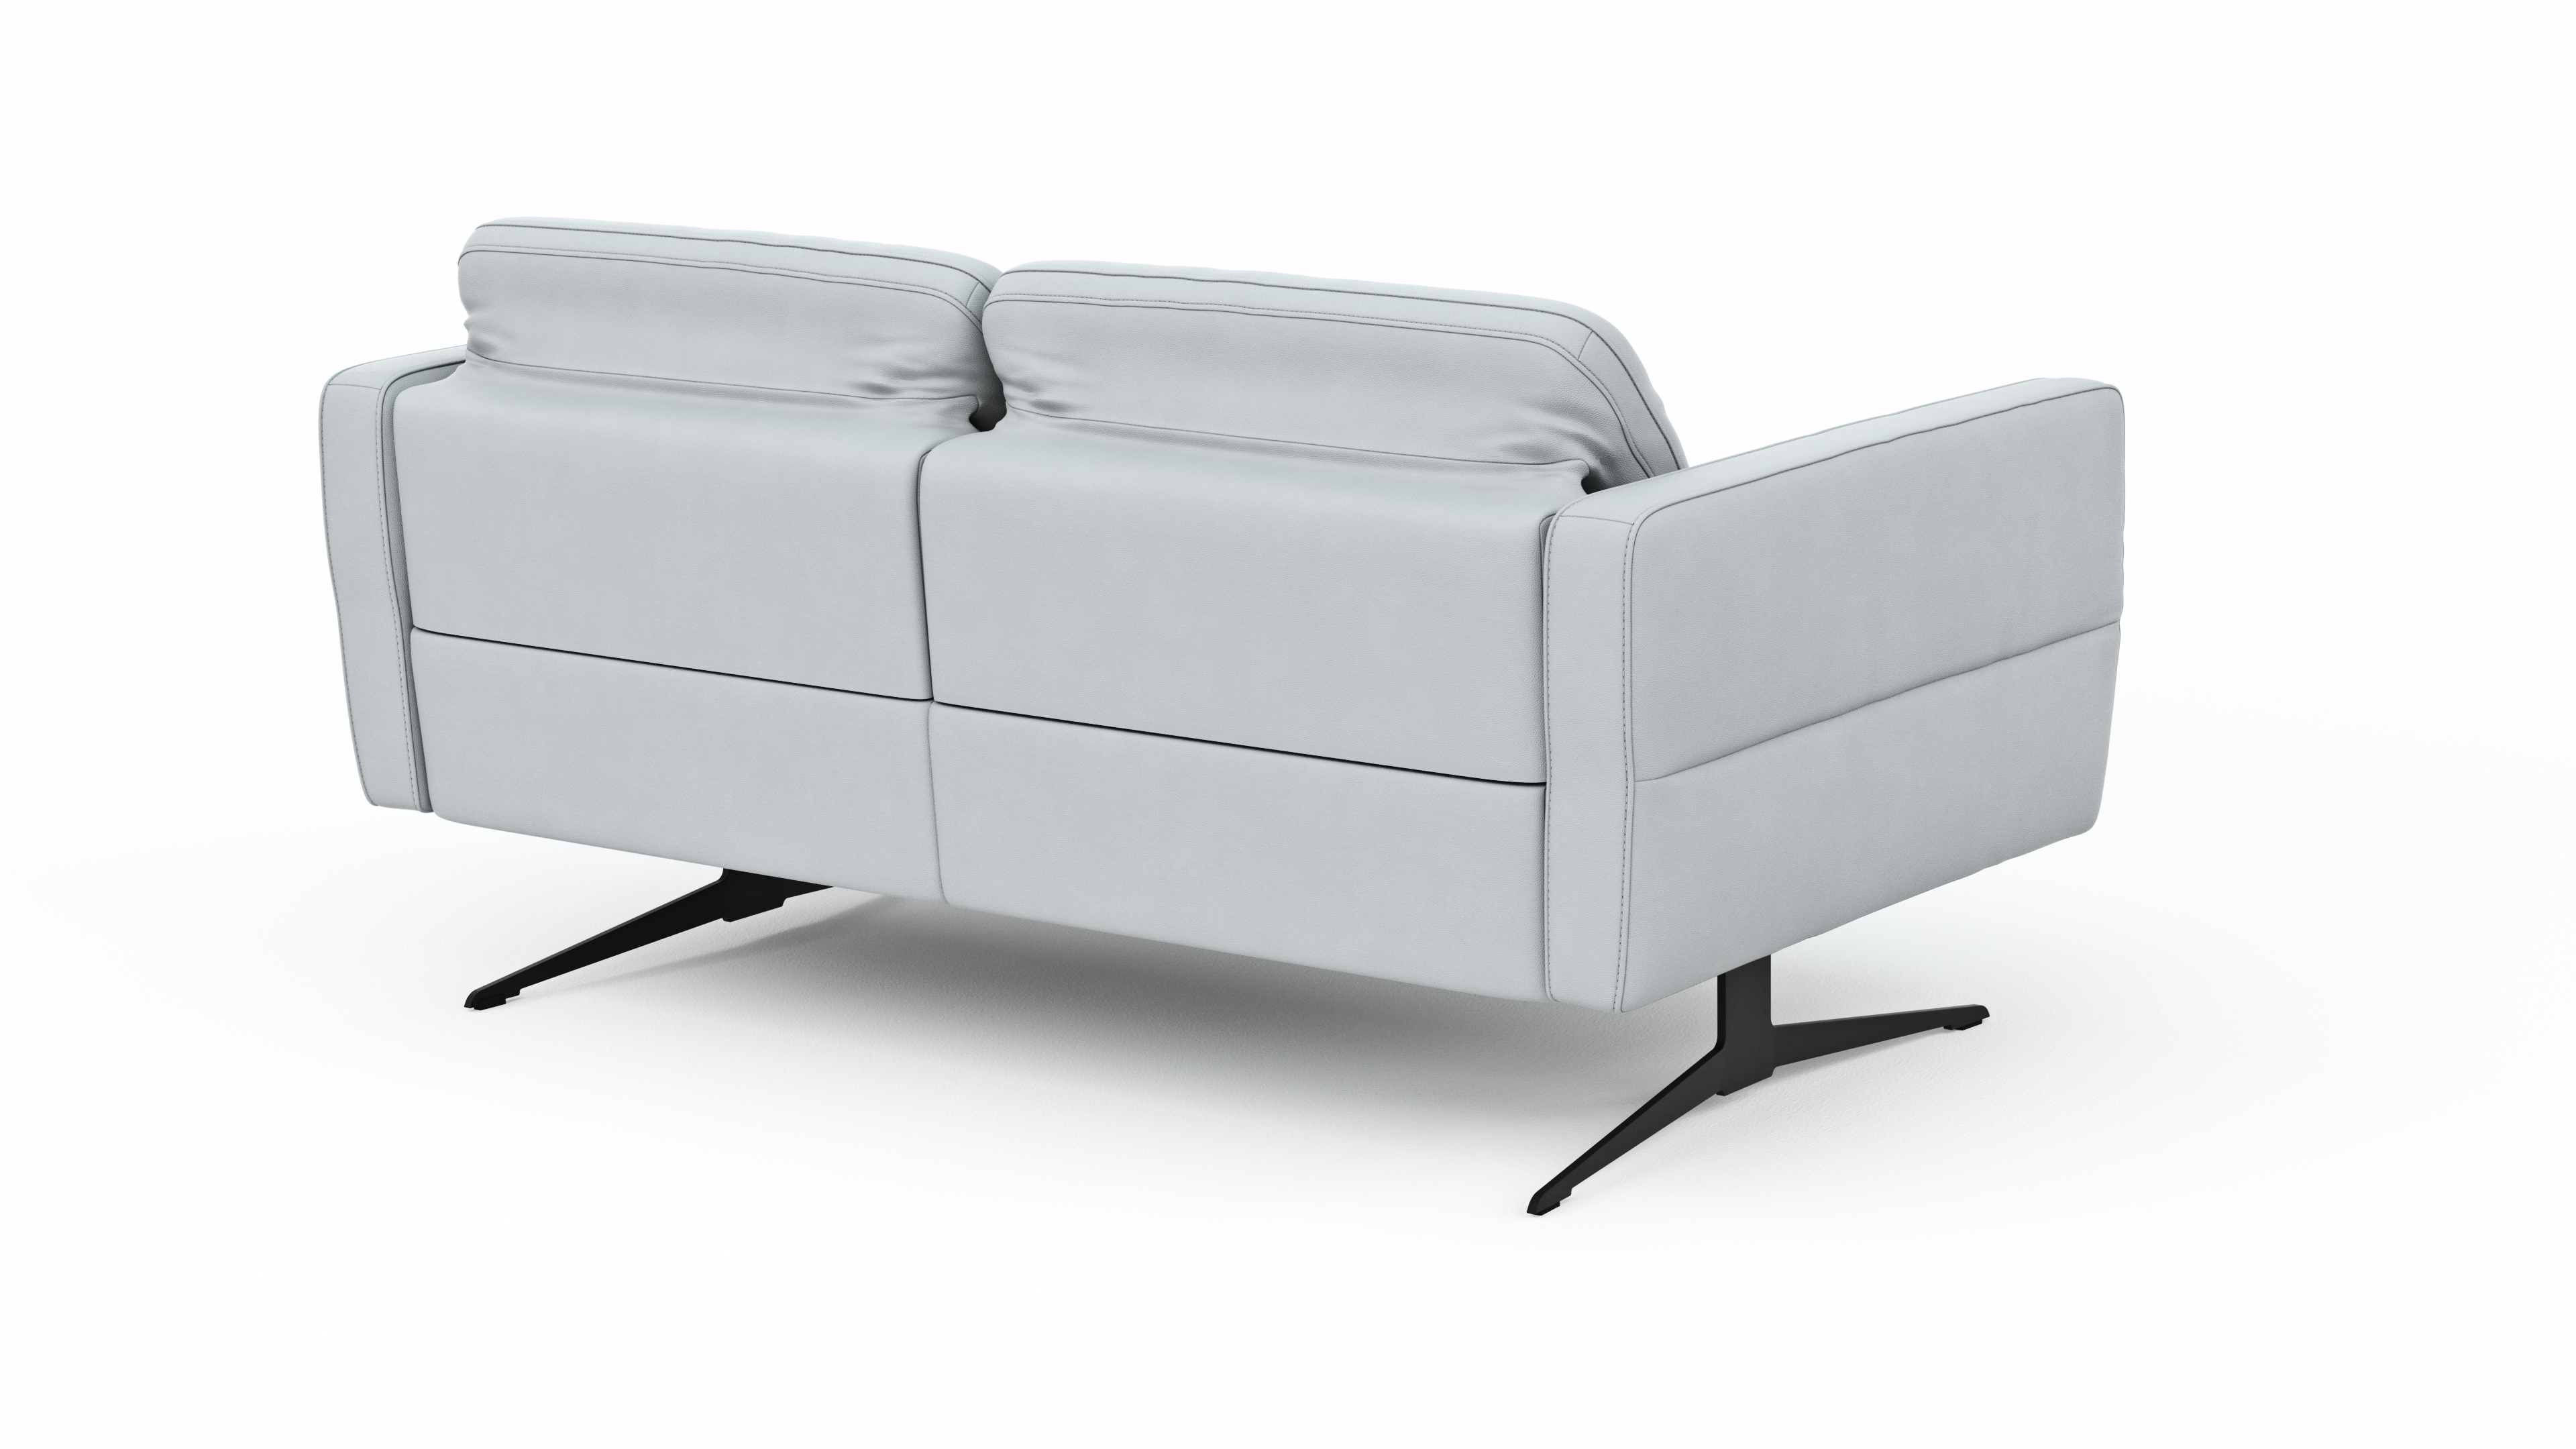 Global Select Sofa Estrela freisteller 3 104187 | Homepoet